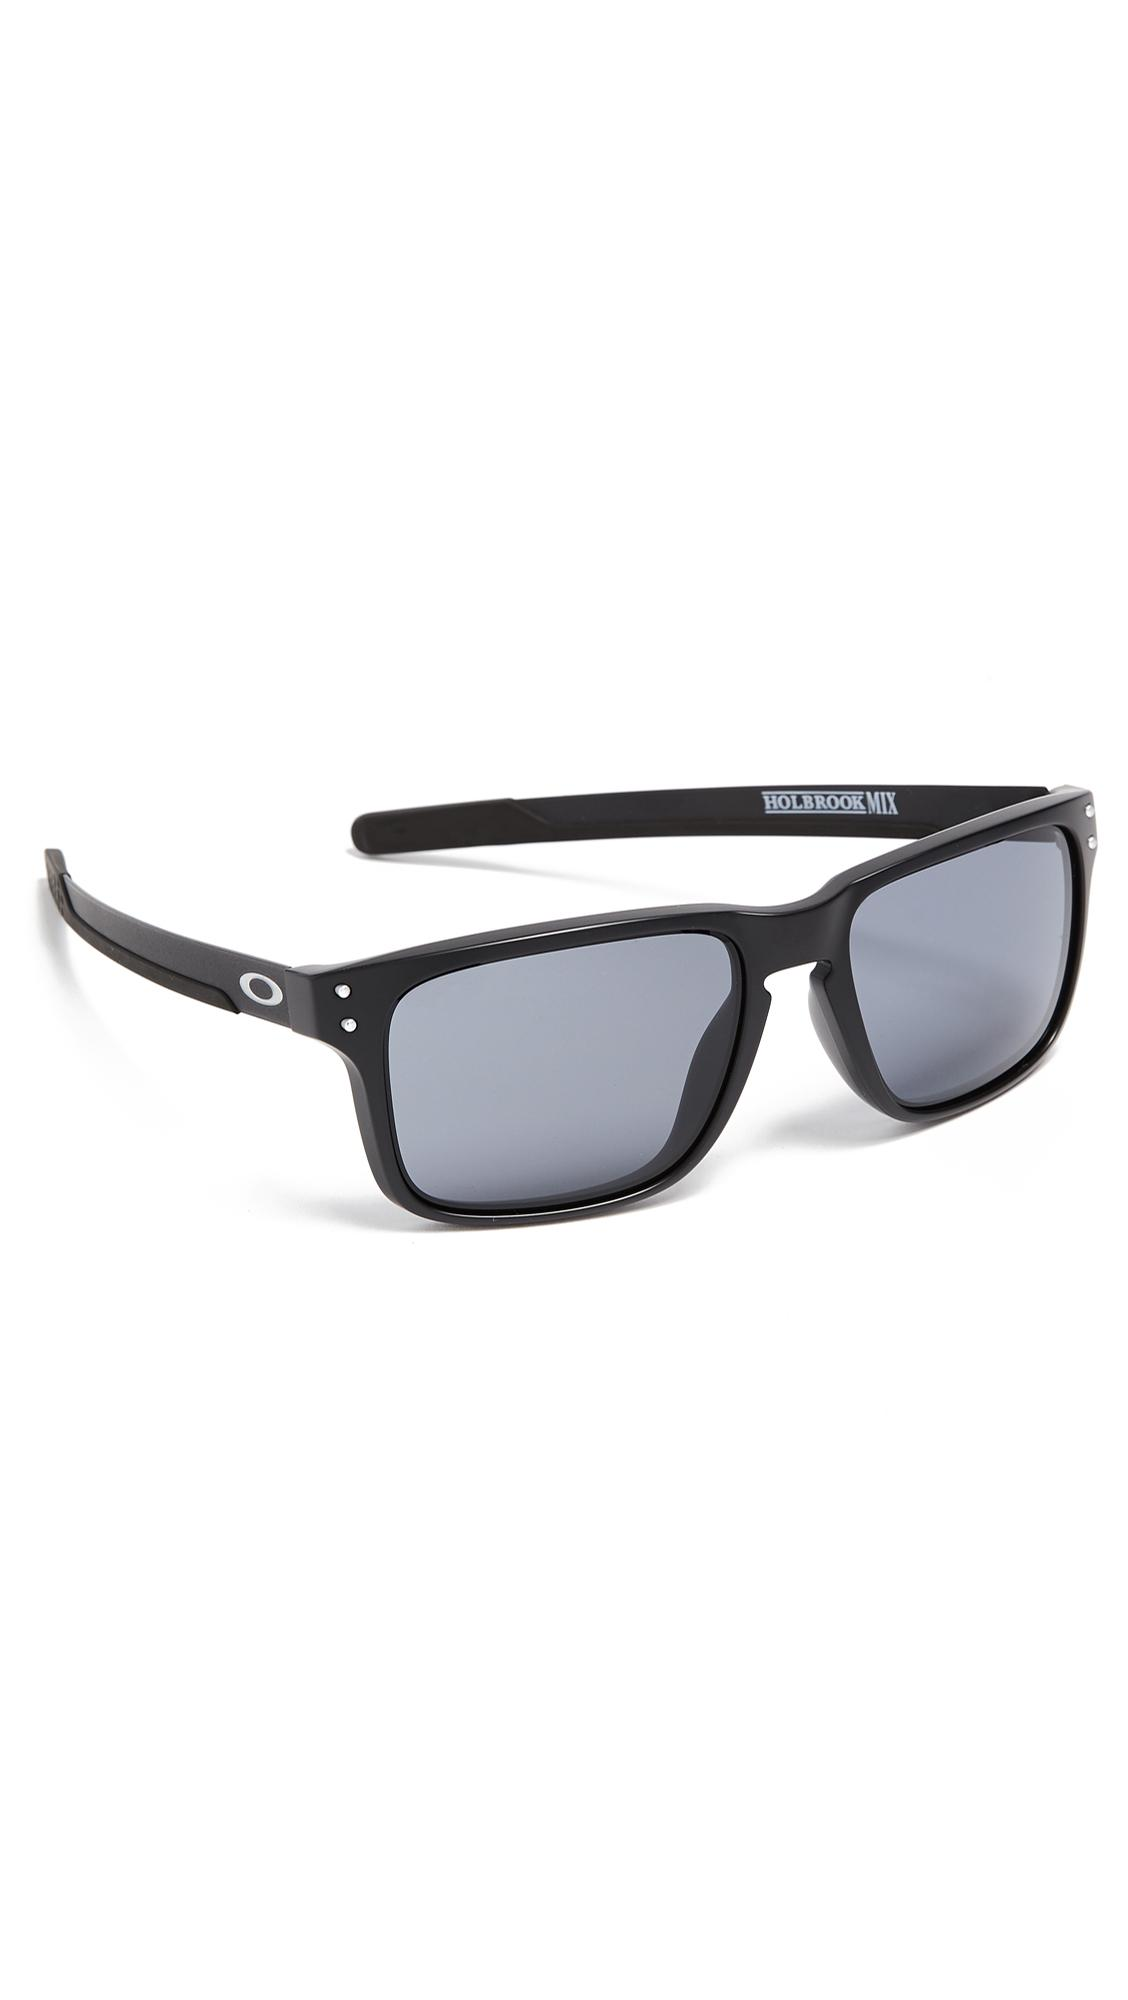 8da82ba0af420 Oakley Holbrook Sunglasses In Black Grey